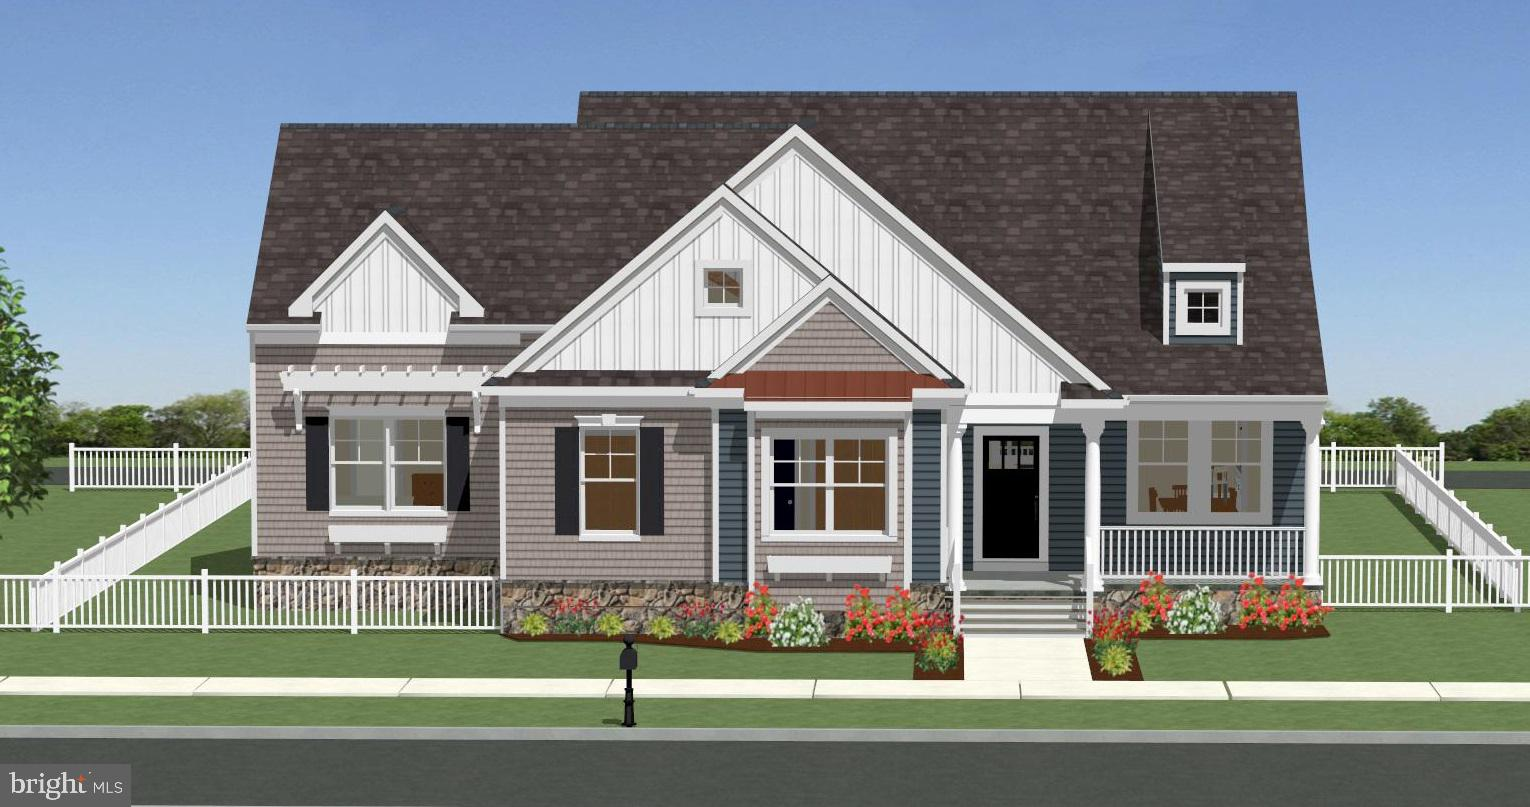 Popular Brittany Model!  Ranch style home with open floor plan.  Lifestyle - the original Parkside builder will customize homes to buyer's tastes and needs.  VISIT OUR NEW MODEL HOME - 501 Spring Hollow Drive.